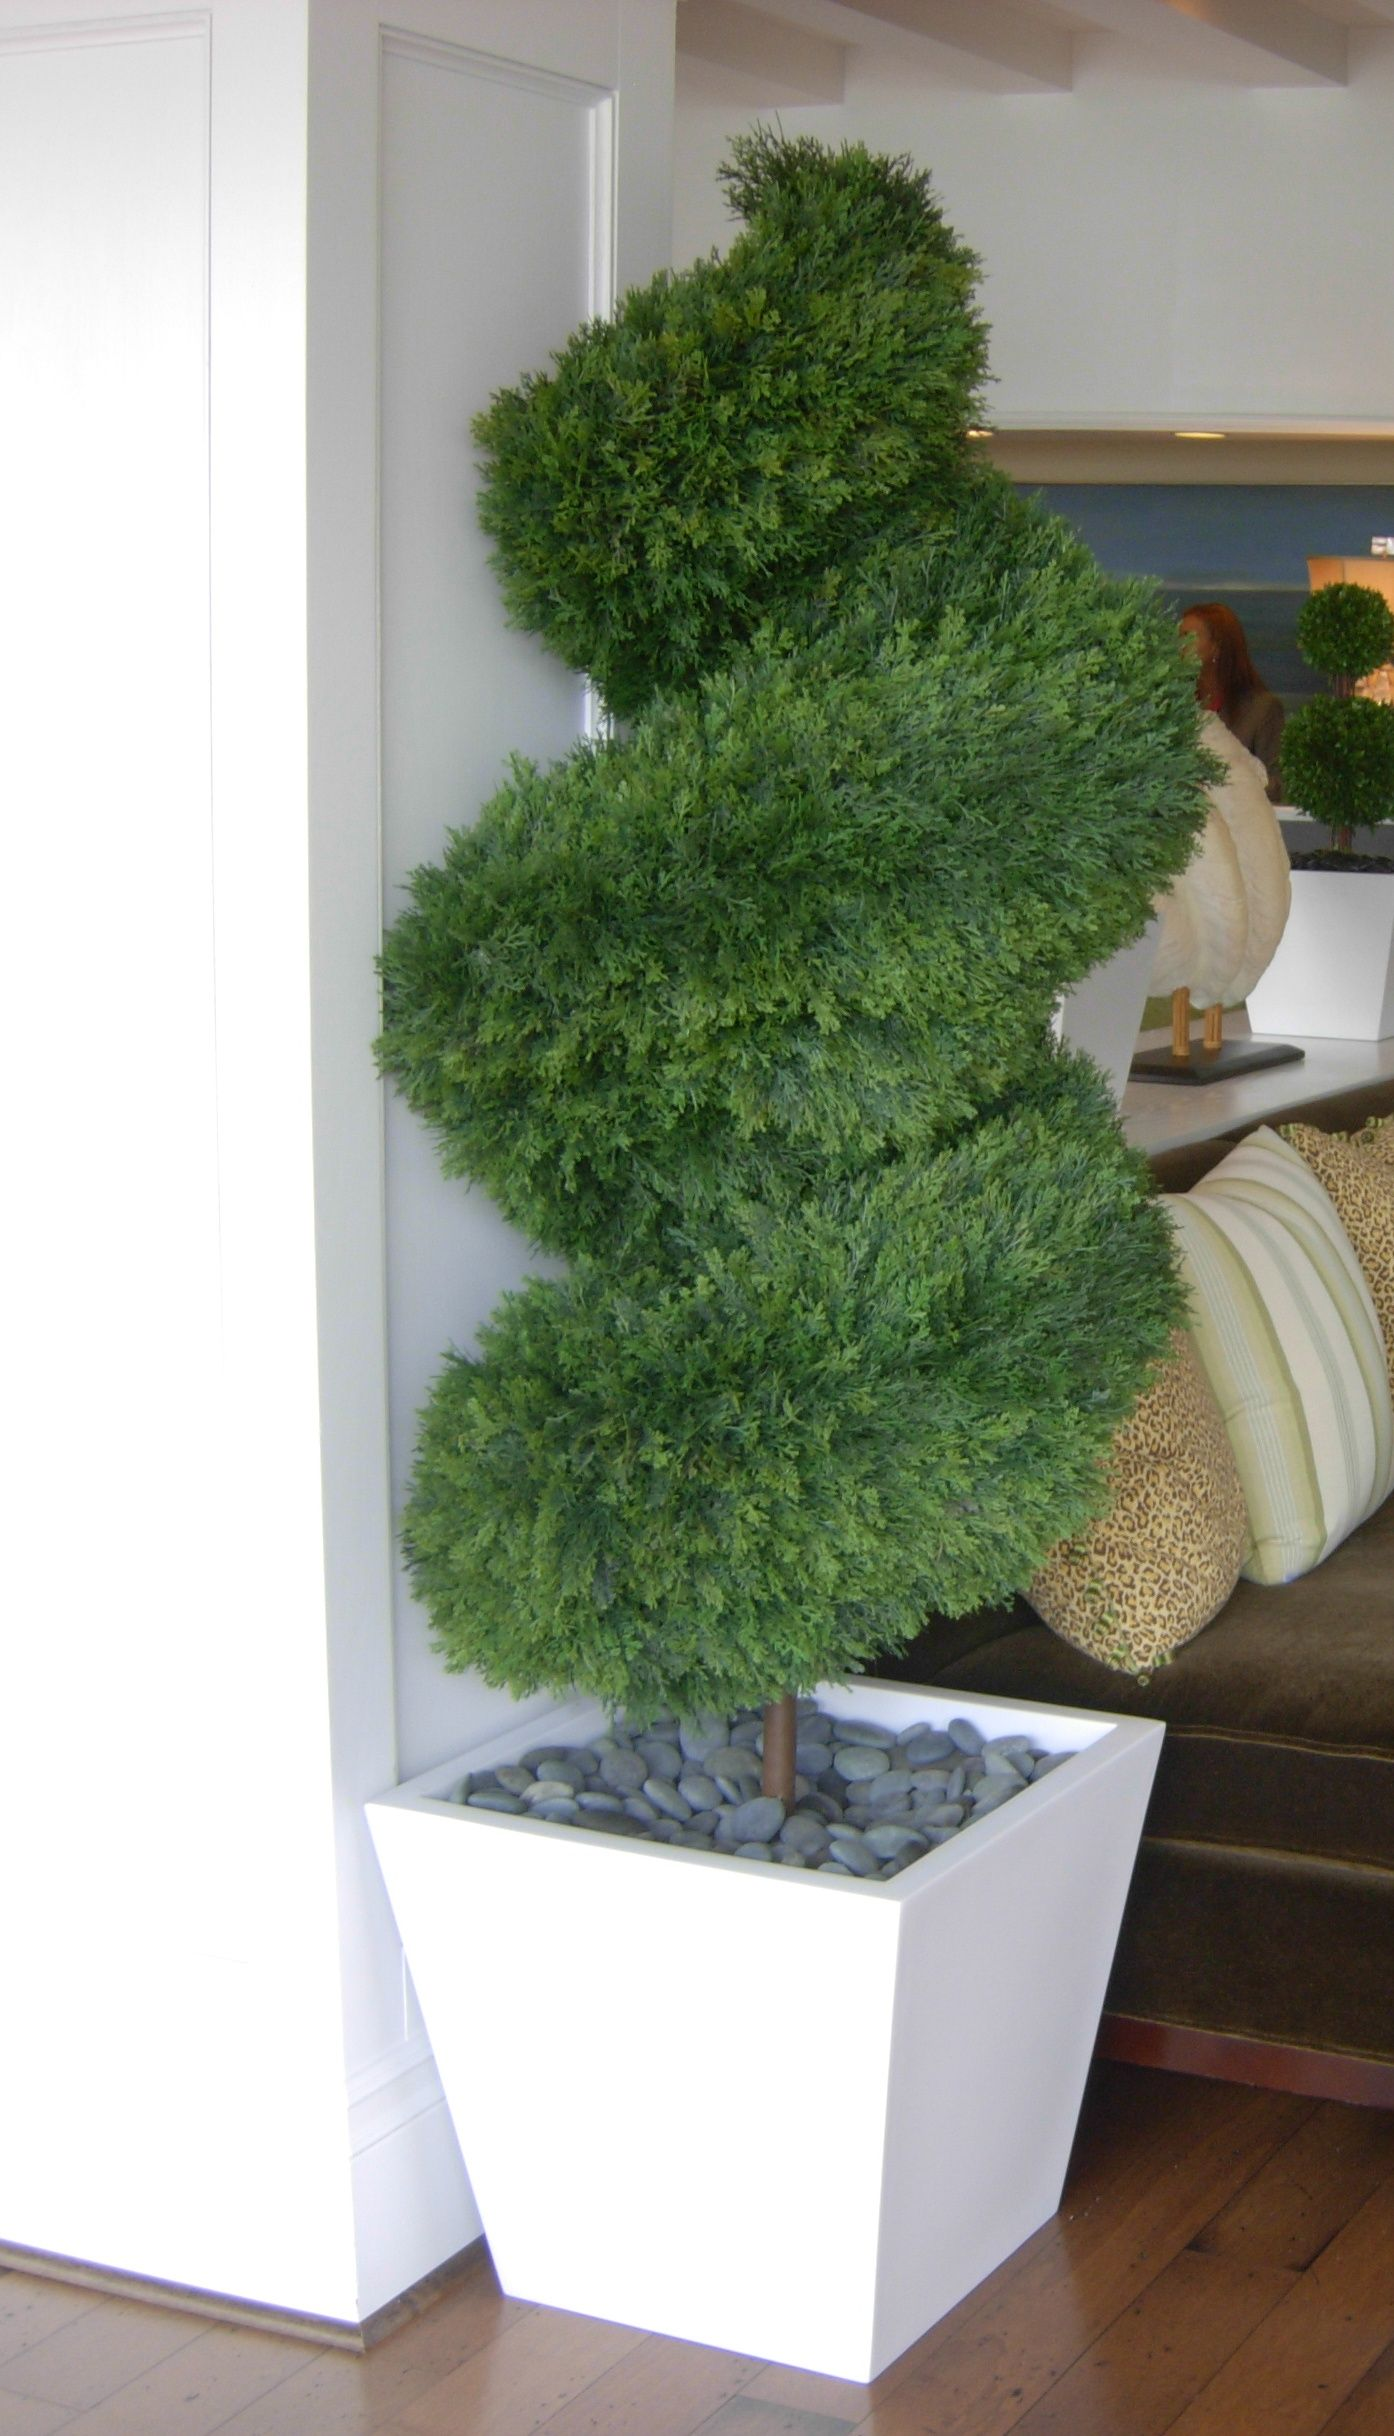 Double Spiral Juniper Topiary designed and created by